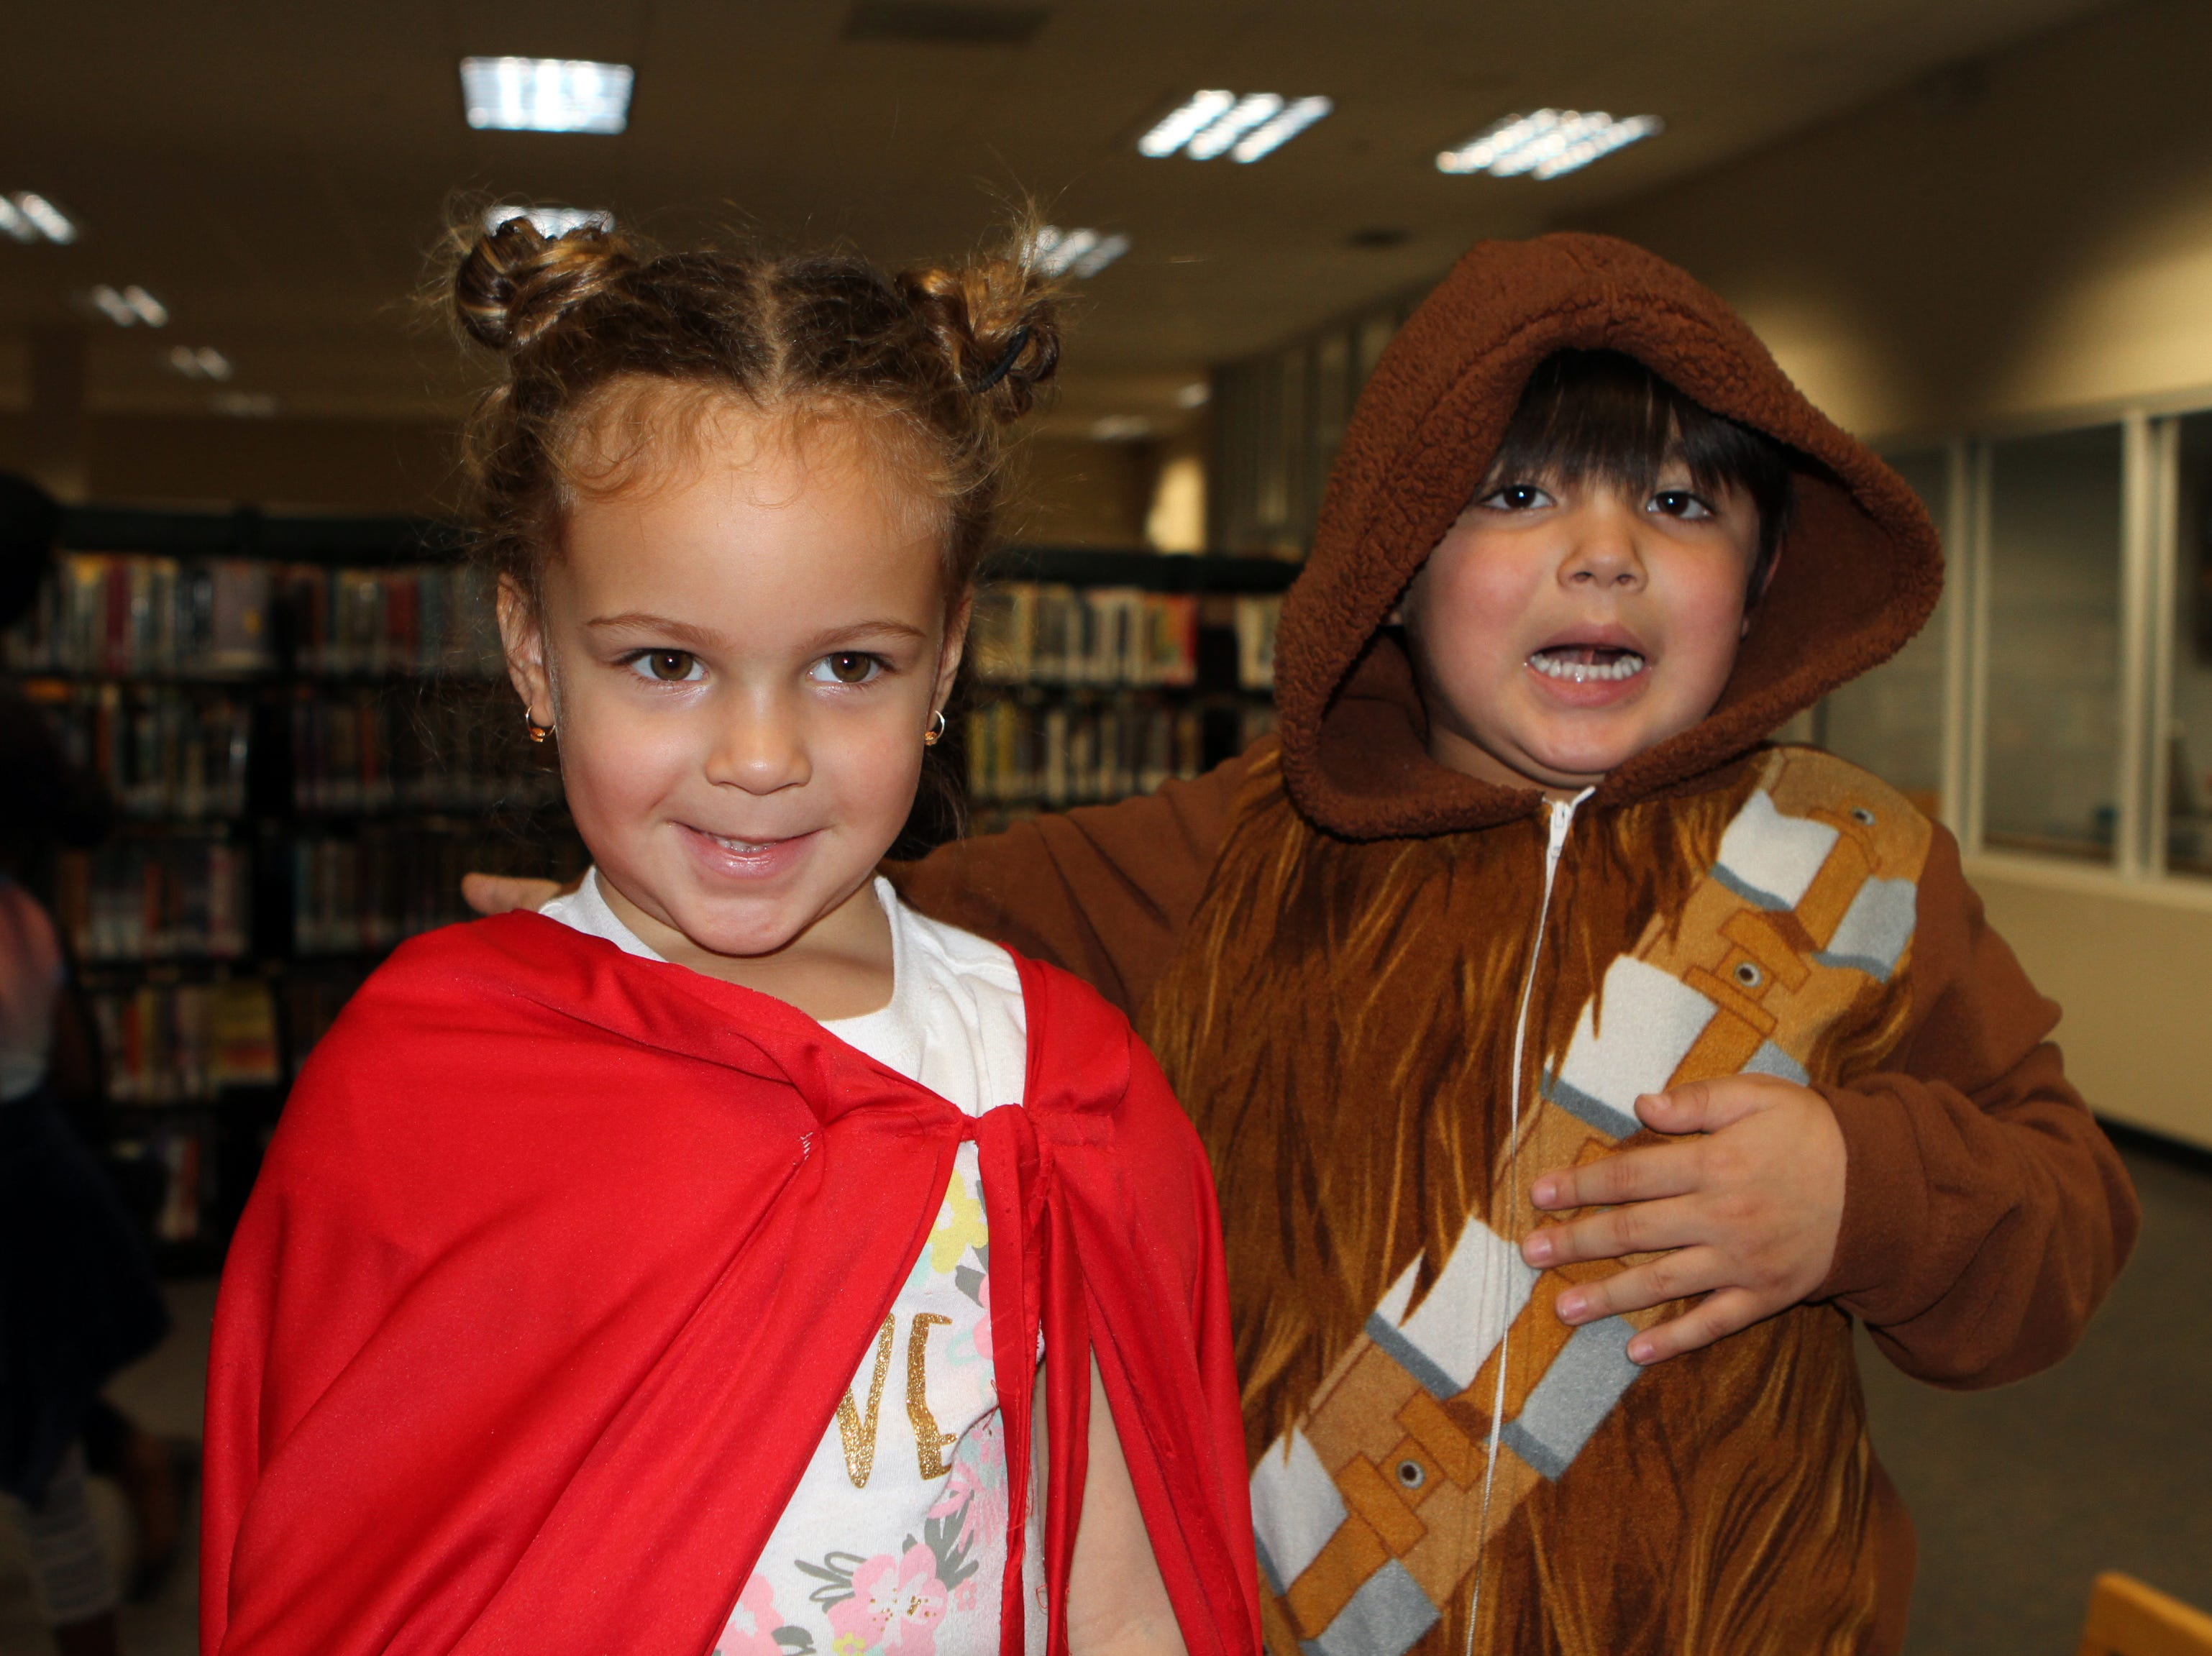 Jasmyn Chase and Joshua Franks at CMC Public Library's annual Sci-Fi Expo on Saturday, November 3, 2018.